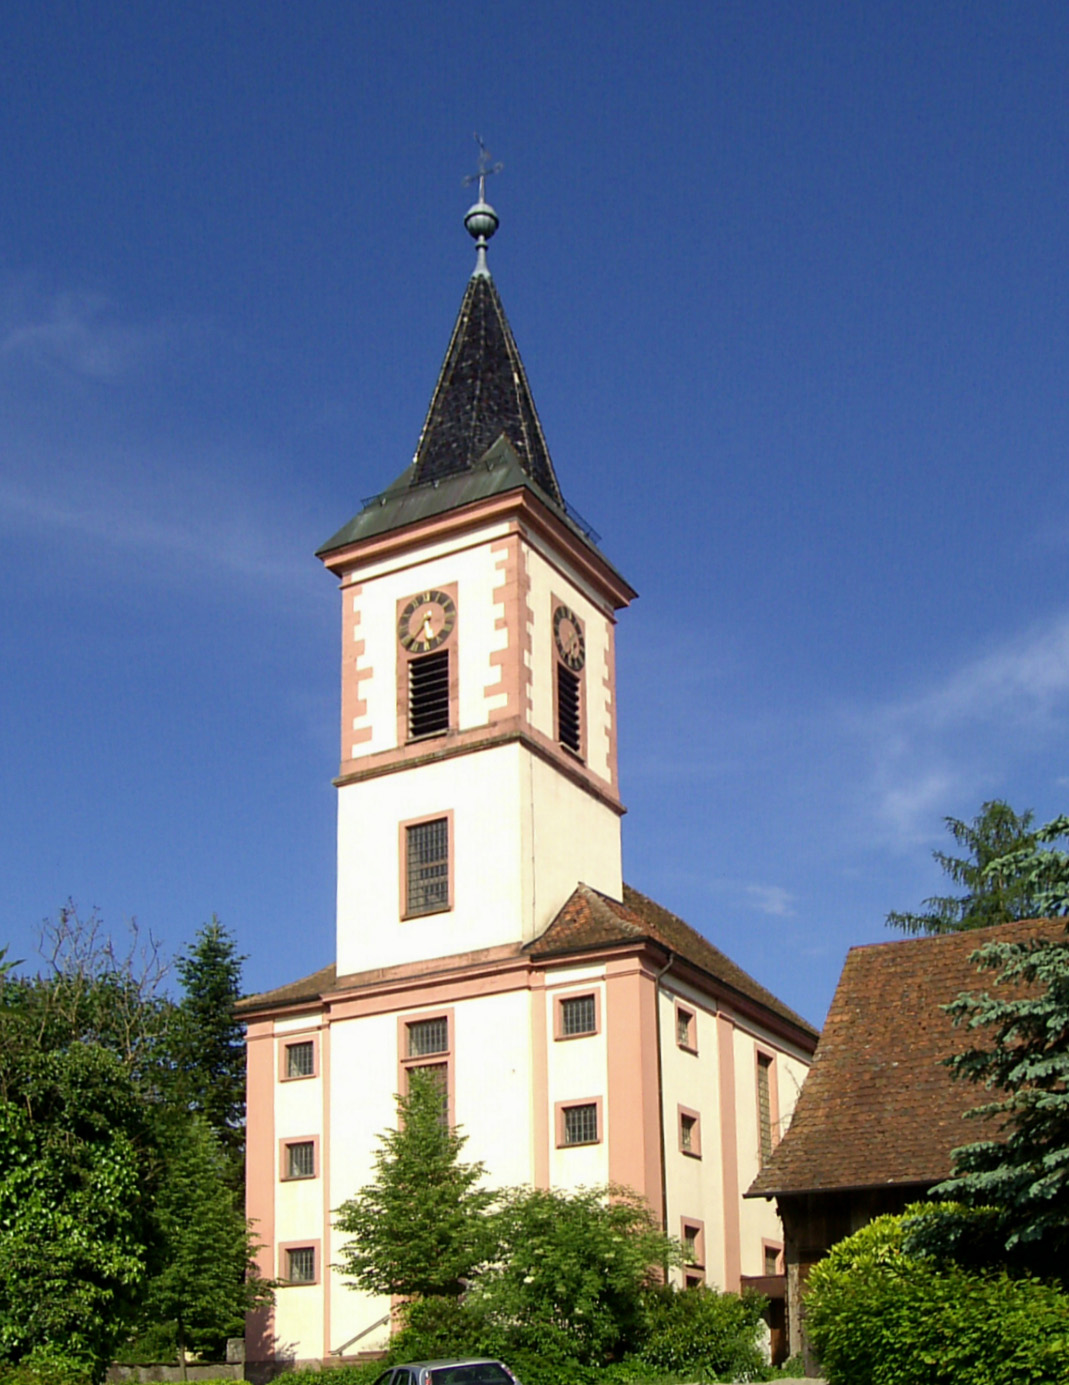 Kirche St. Michael in Wittlingen